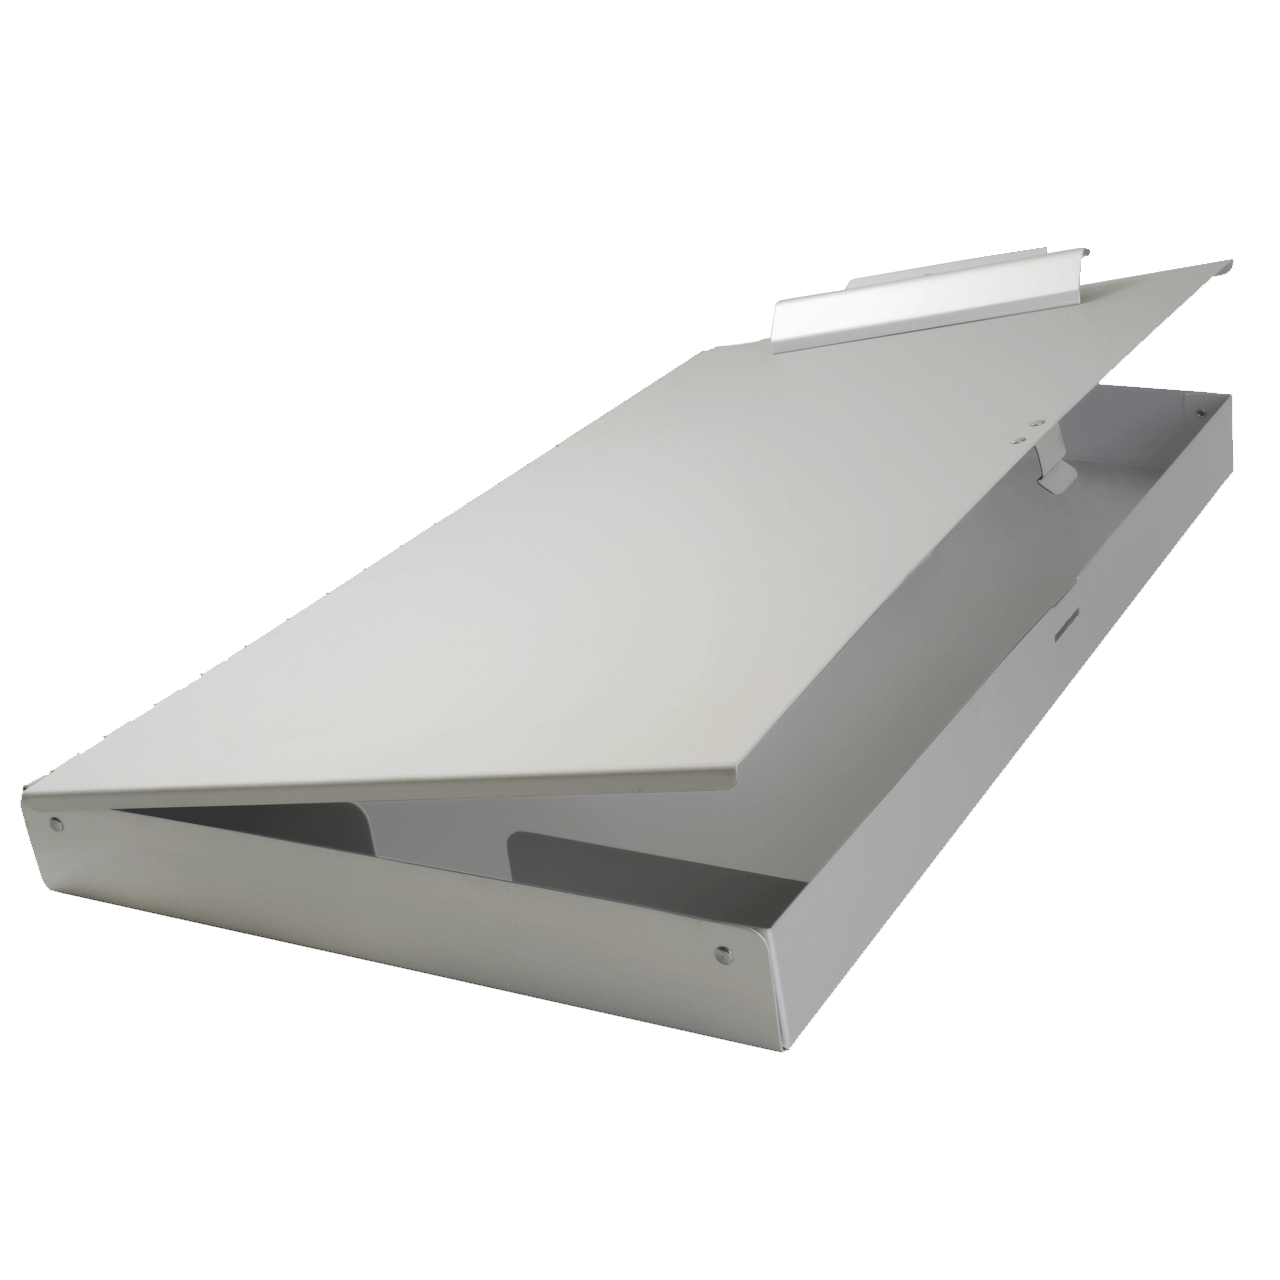 Aluminum clip flat. X clipboard with